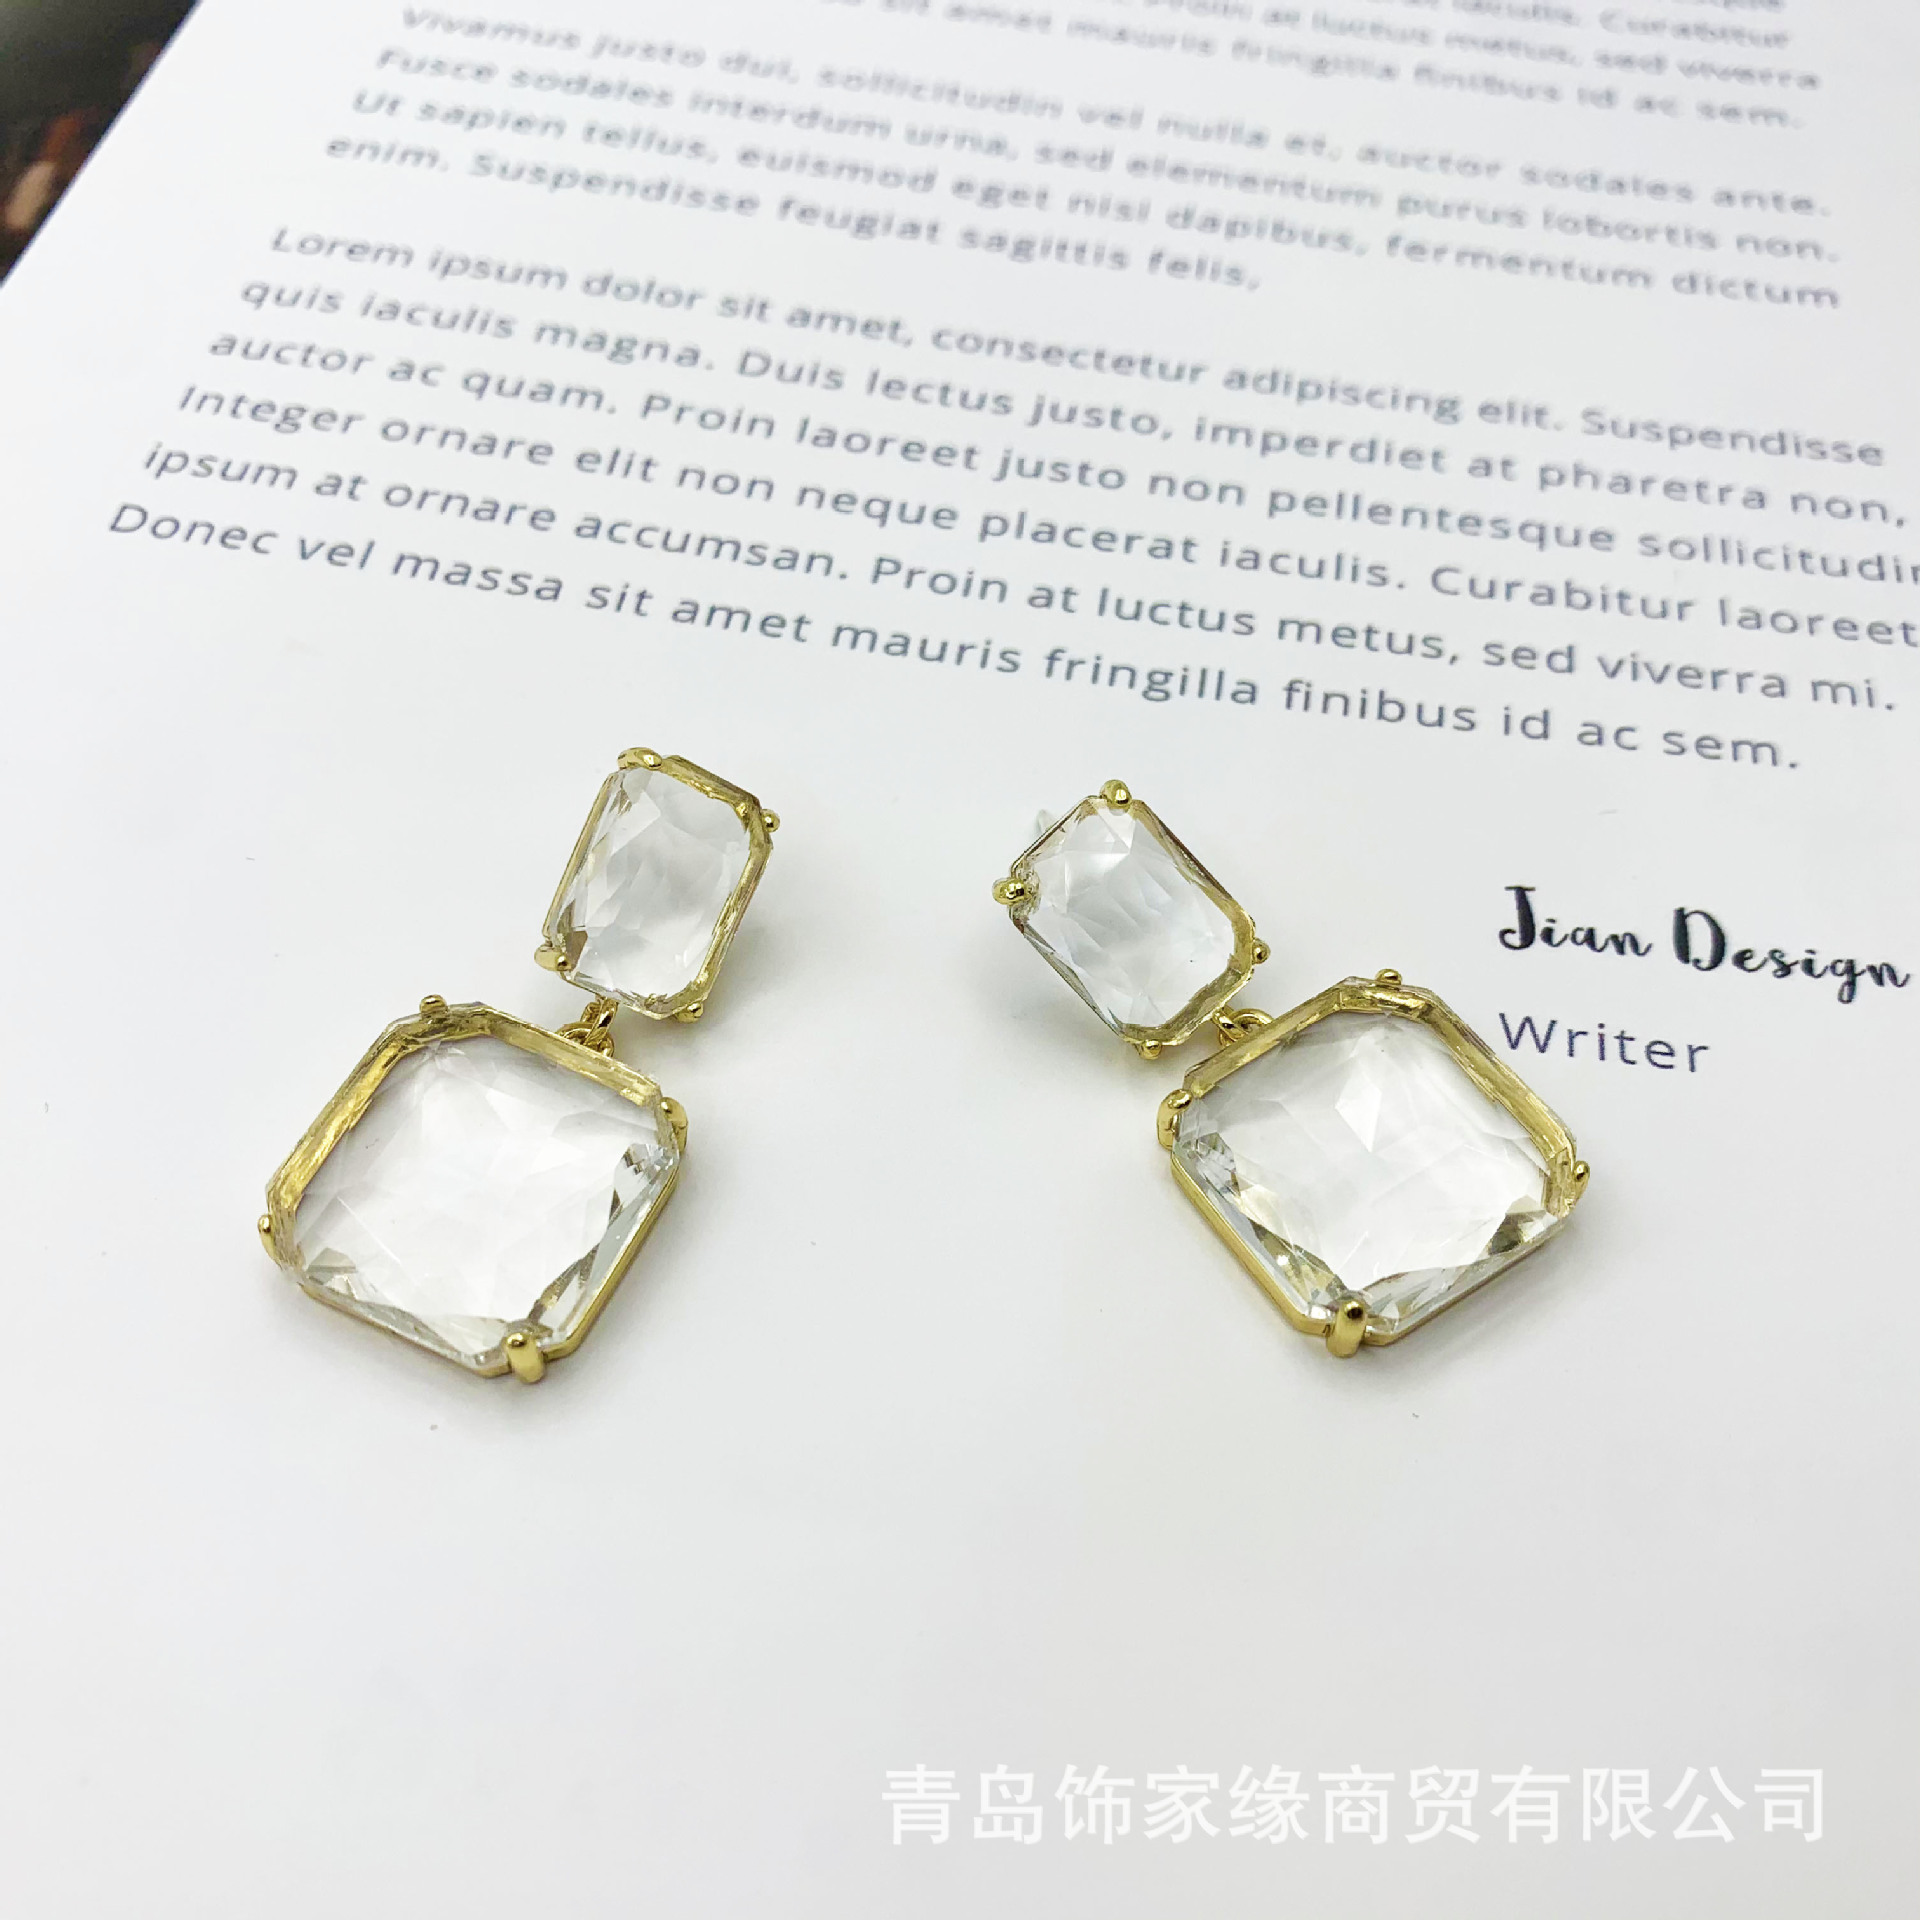 Attractive Geometric Earrings for Fashionable Ensembles